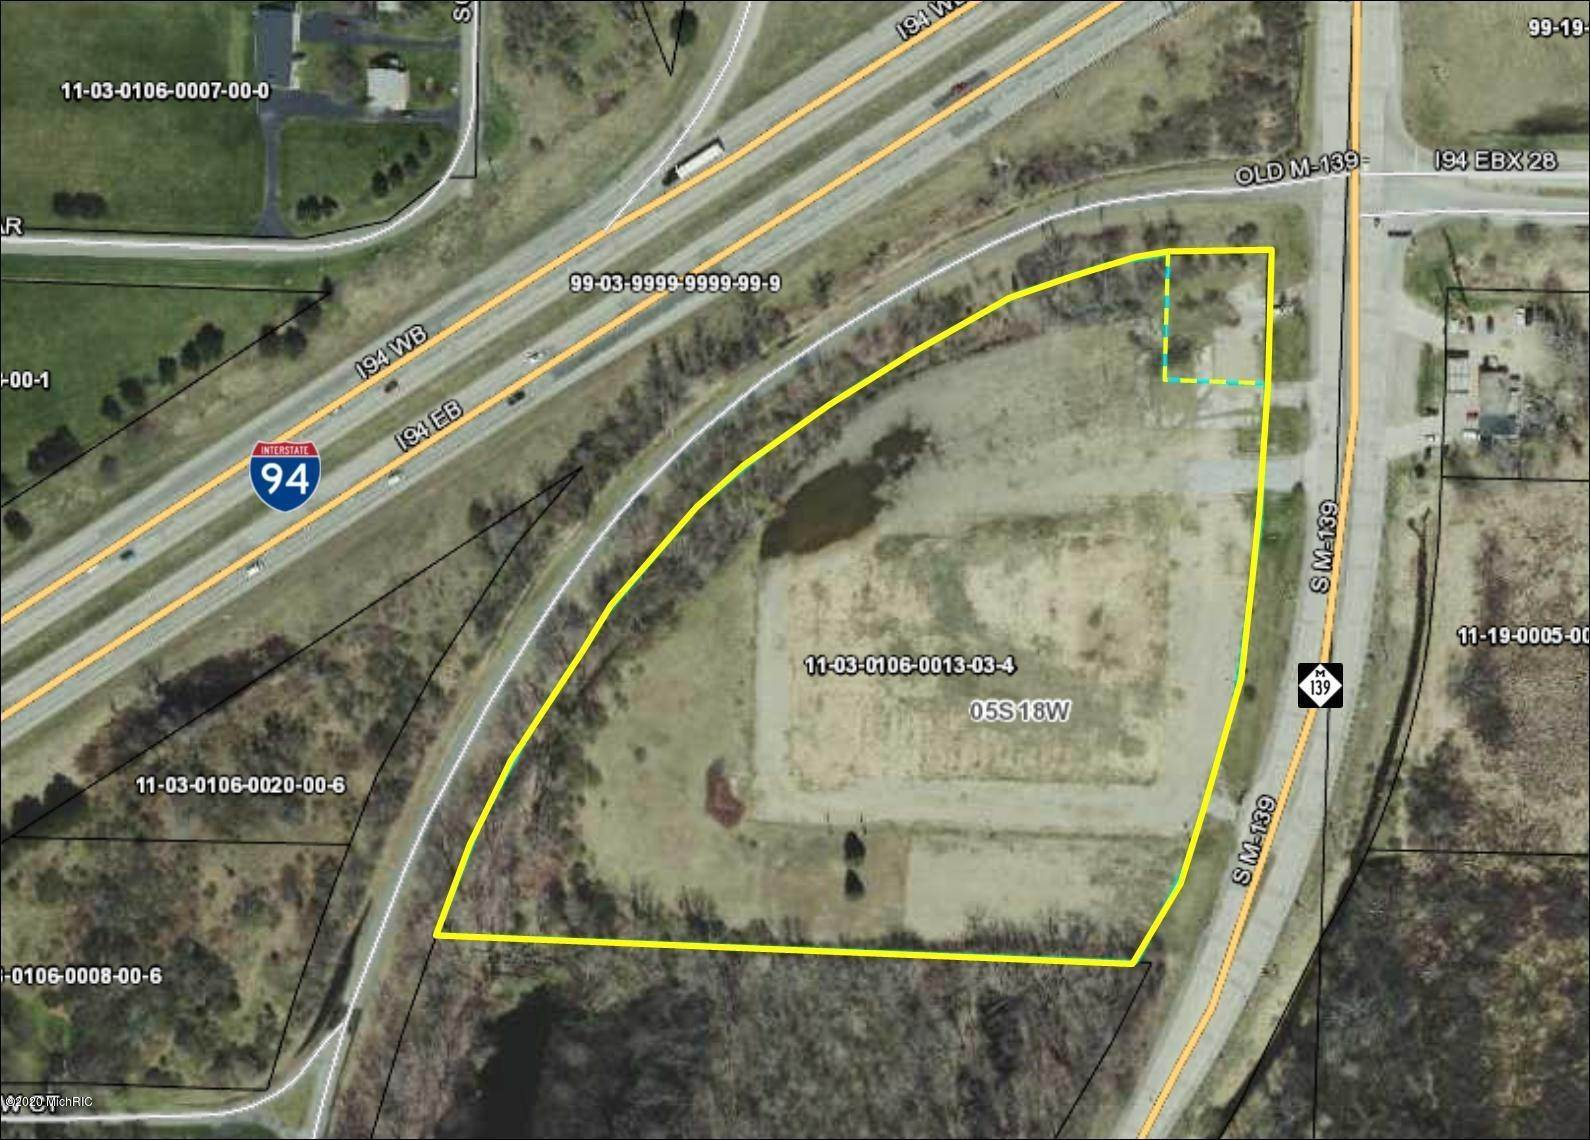 Land for Sale at 2860 M-139 Benton Harbor, Michigan 49022 United States